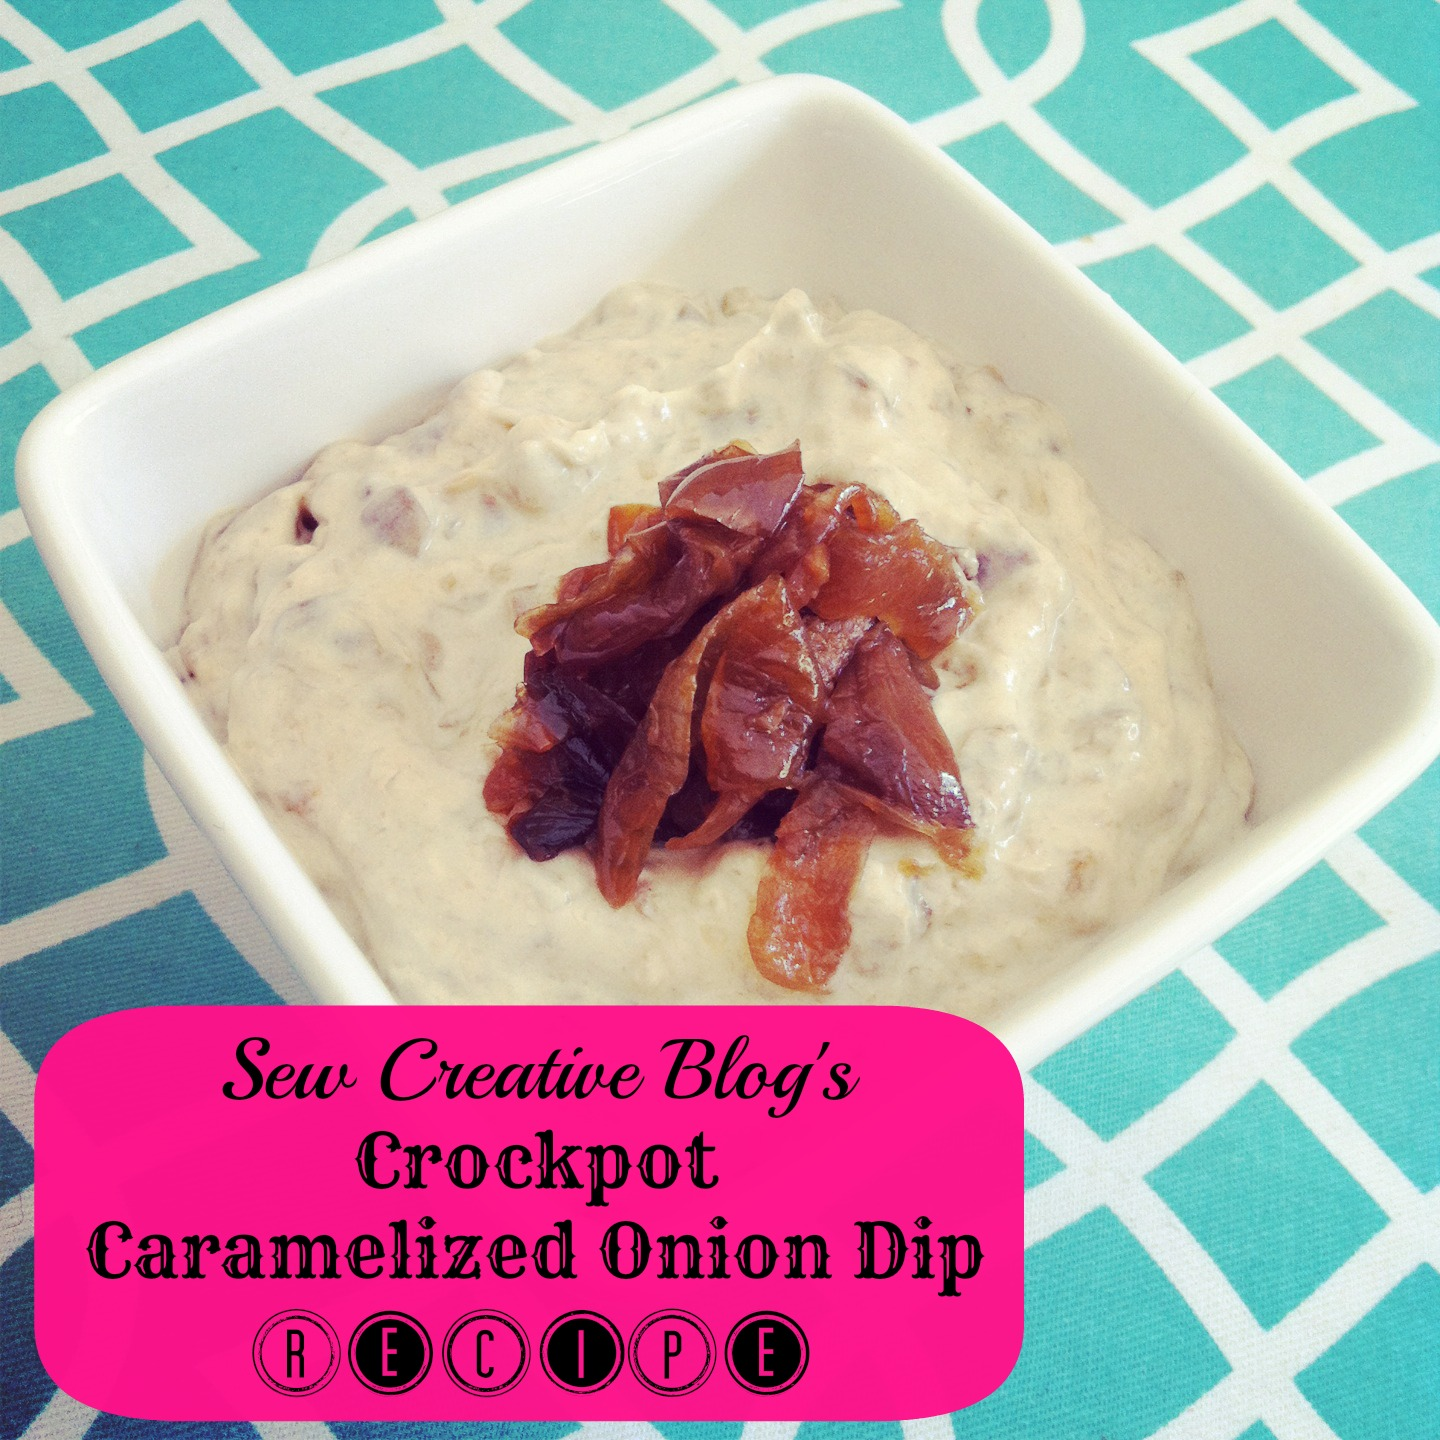 Crockpot caramelized onion dip recipe hello creative family sew creative blogs crockpot caramelized onion dip recipe best party dip ever forumfinder Images